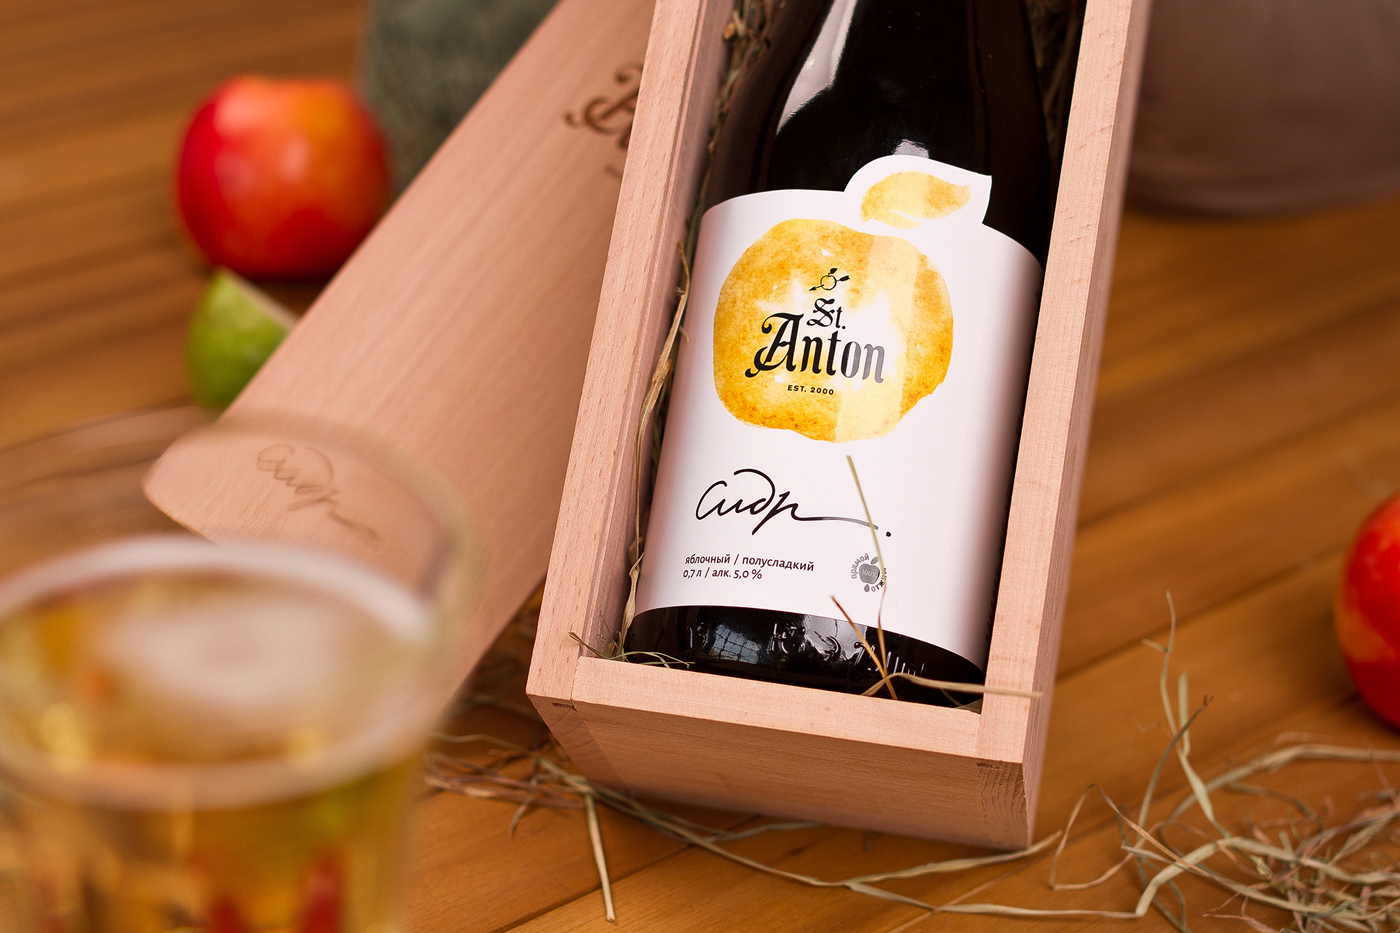 St. Anton Cider Label Design